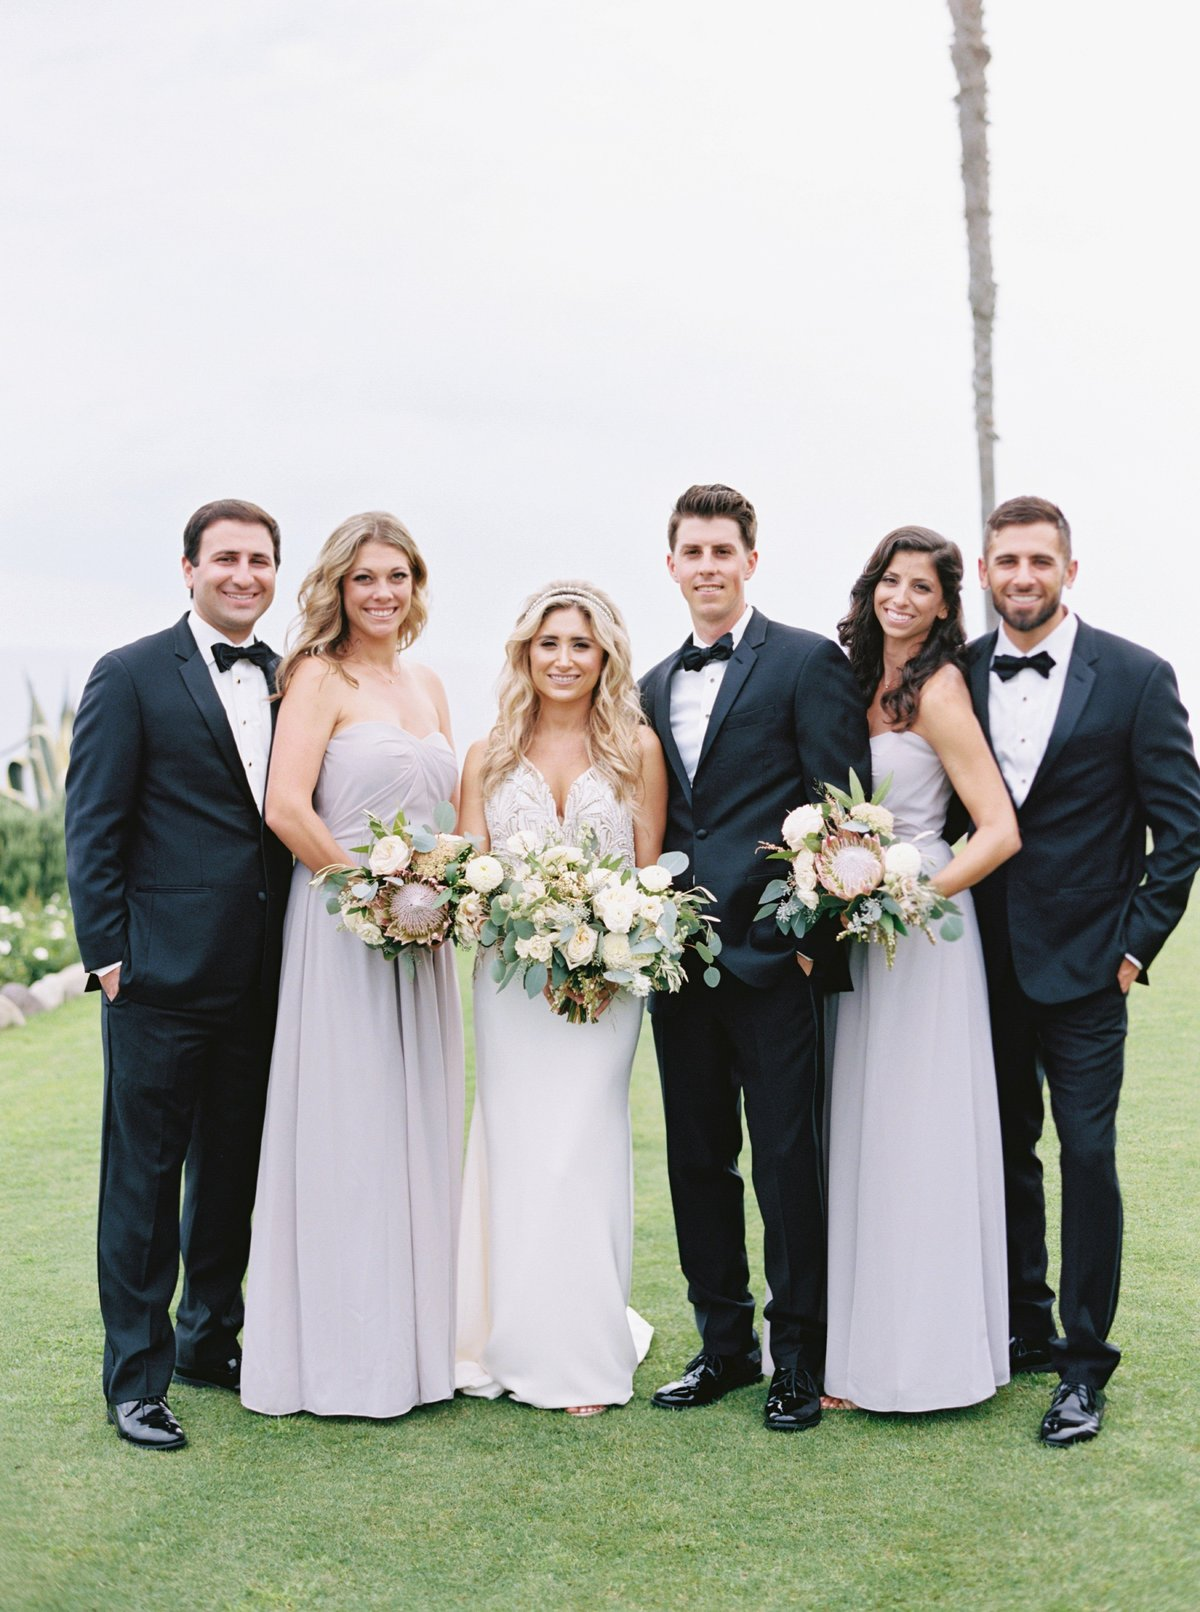 nicoleclareyphotography_evan+jeff_laguna beach_wedding_0006